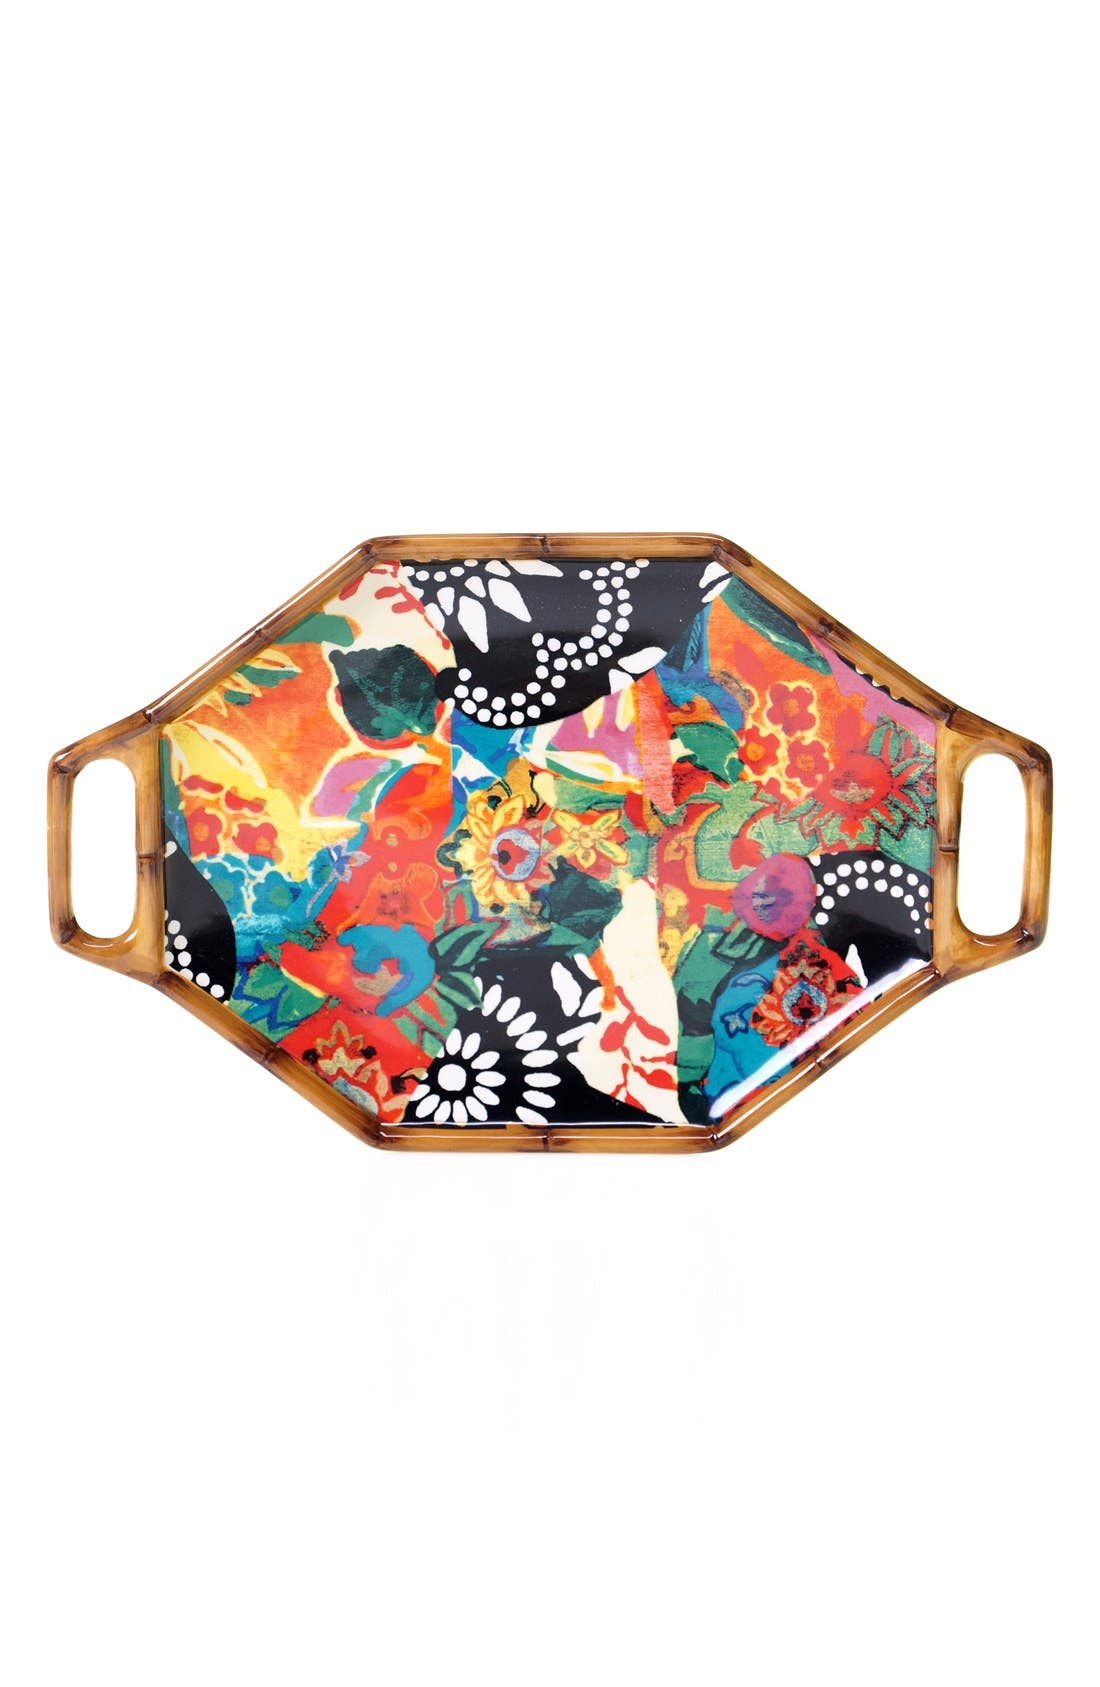 Main Image - Tracy Porter® For Poetic Wanderlust® 'Magpie' Oval Platter